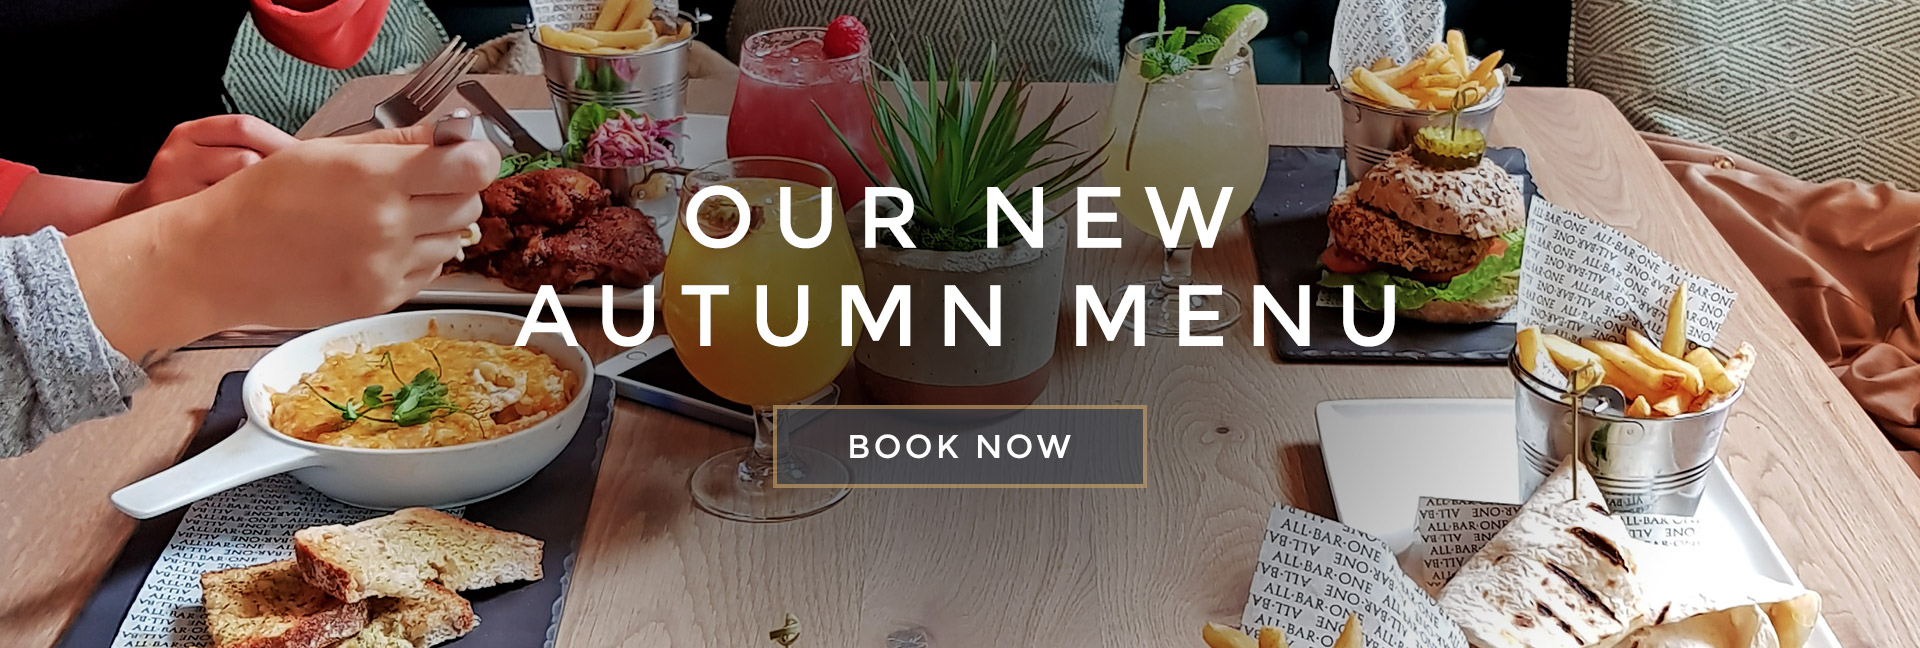 Our new Autumn menu at All Bar One Brindleyplace - Book now